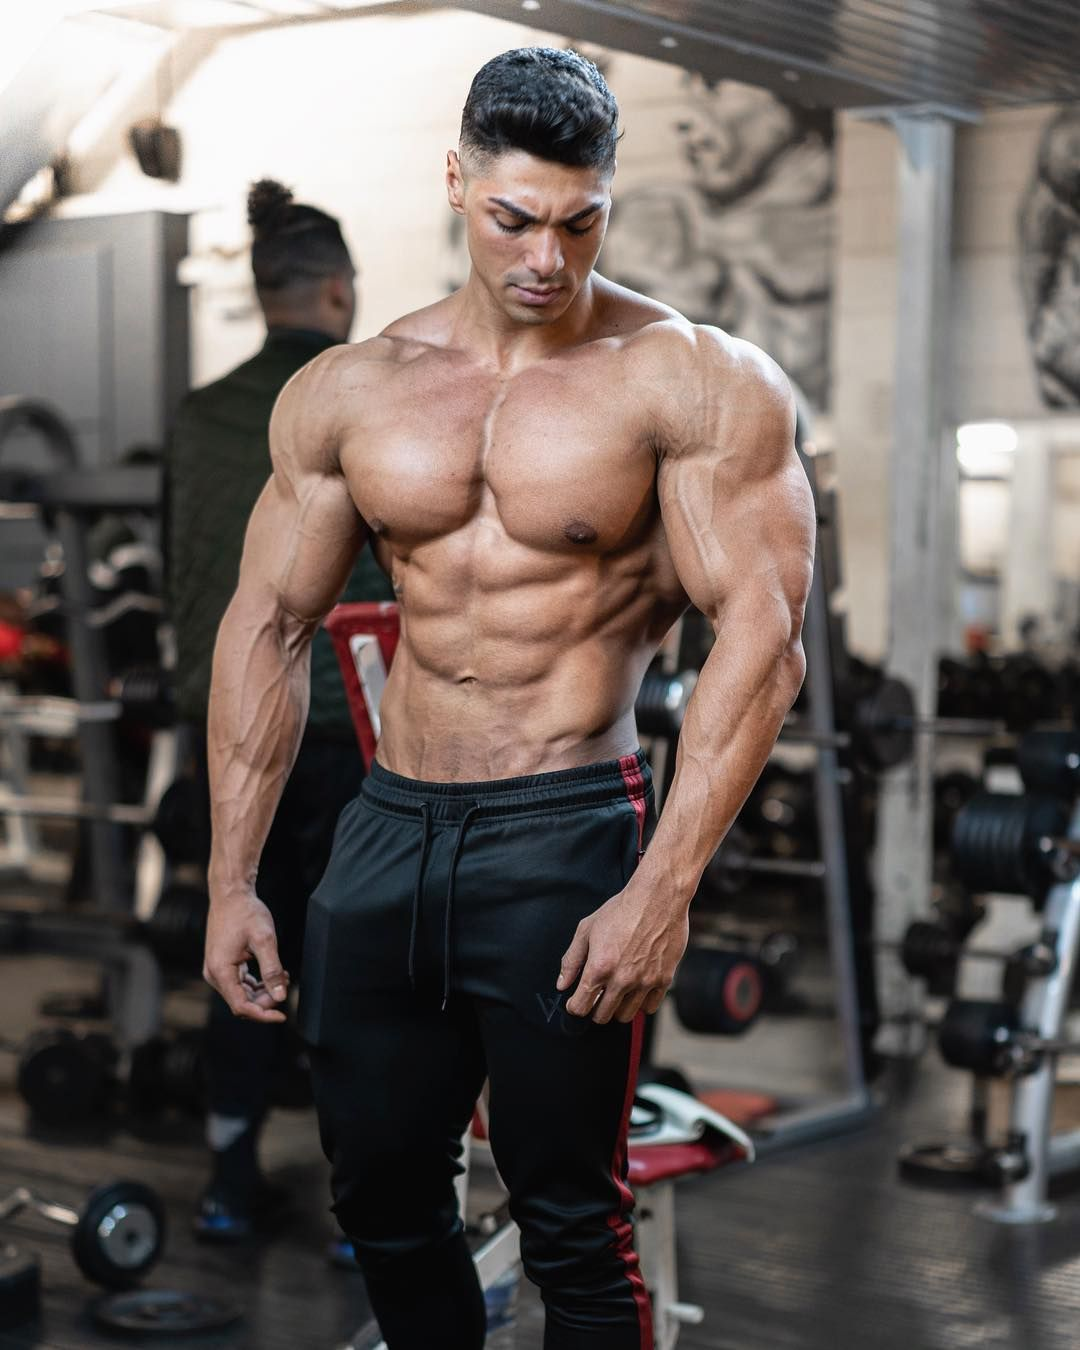 I'M feelin shredded 🤙🏽 muscular back, muscular men, sport motivation, Bodybuilding Training, Bodybuilding Workouts, Muscular Men, Best Physique, Male Physique, Bodybuilder, Muscle Growth Pills, Olympia Fitness, Workout Fitness